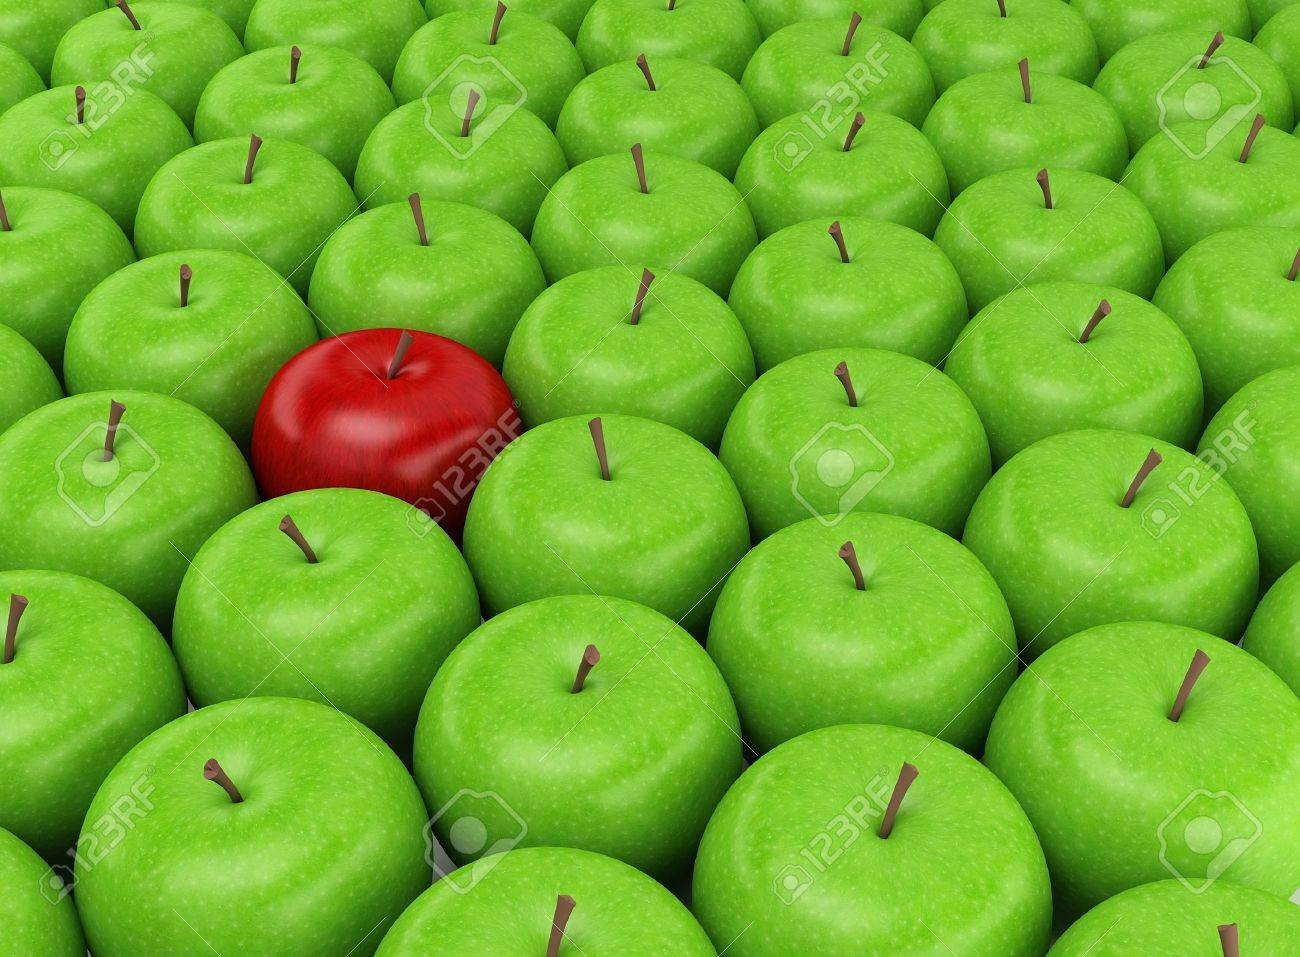 green and red apples. one red apple selected on the background of green apples stock photo - 10967619 and